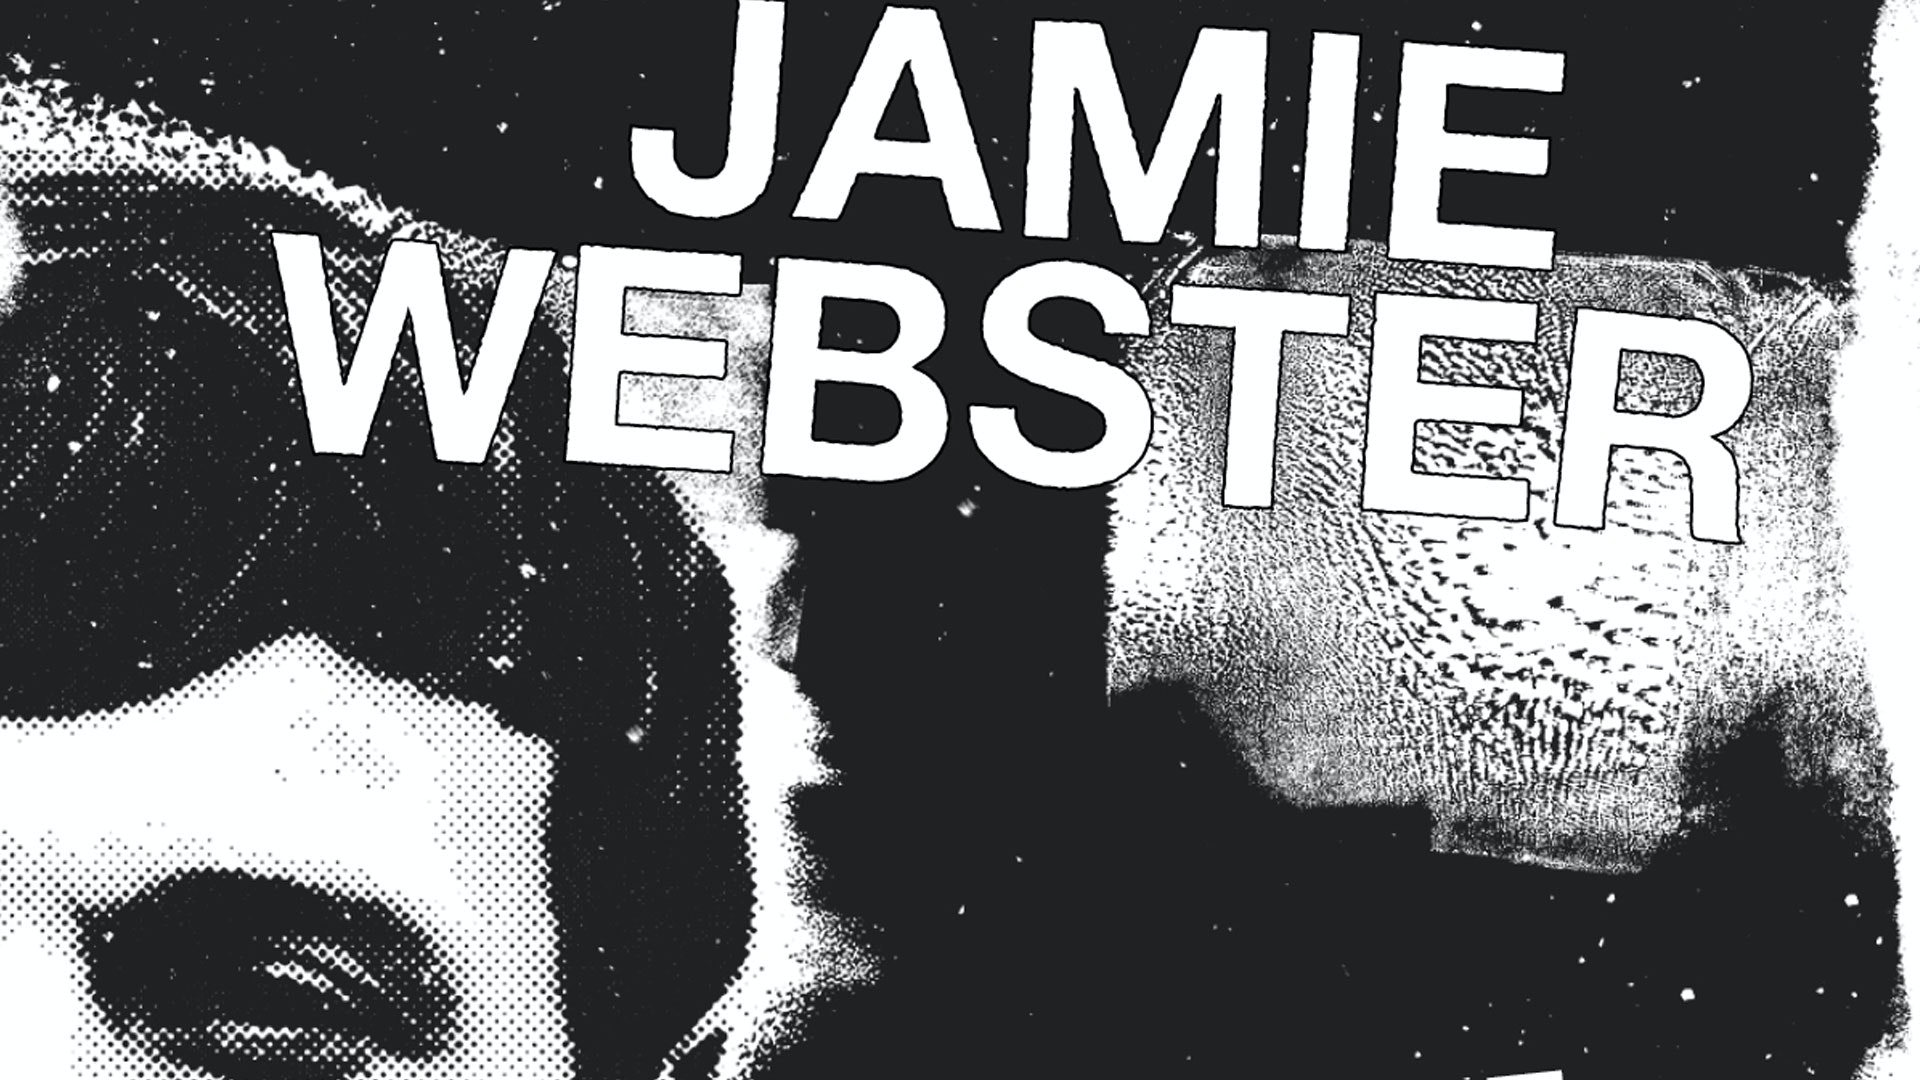 Jamie Webster